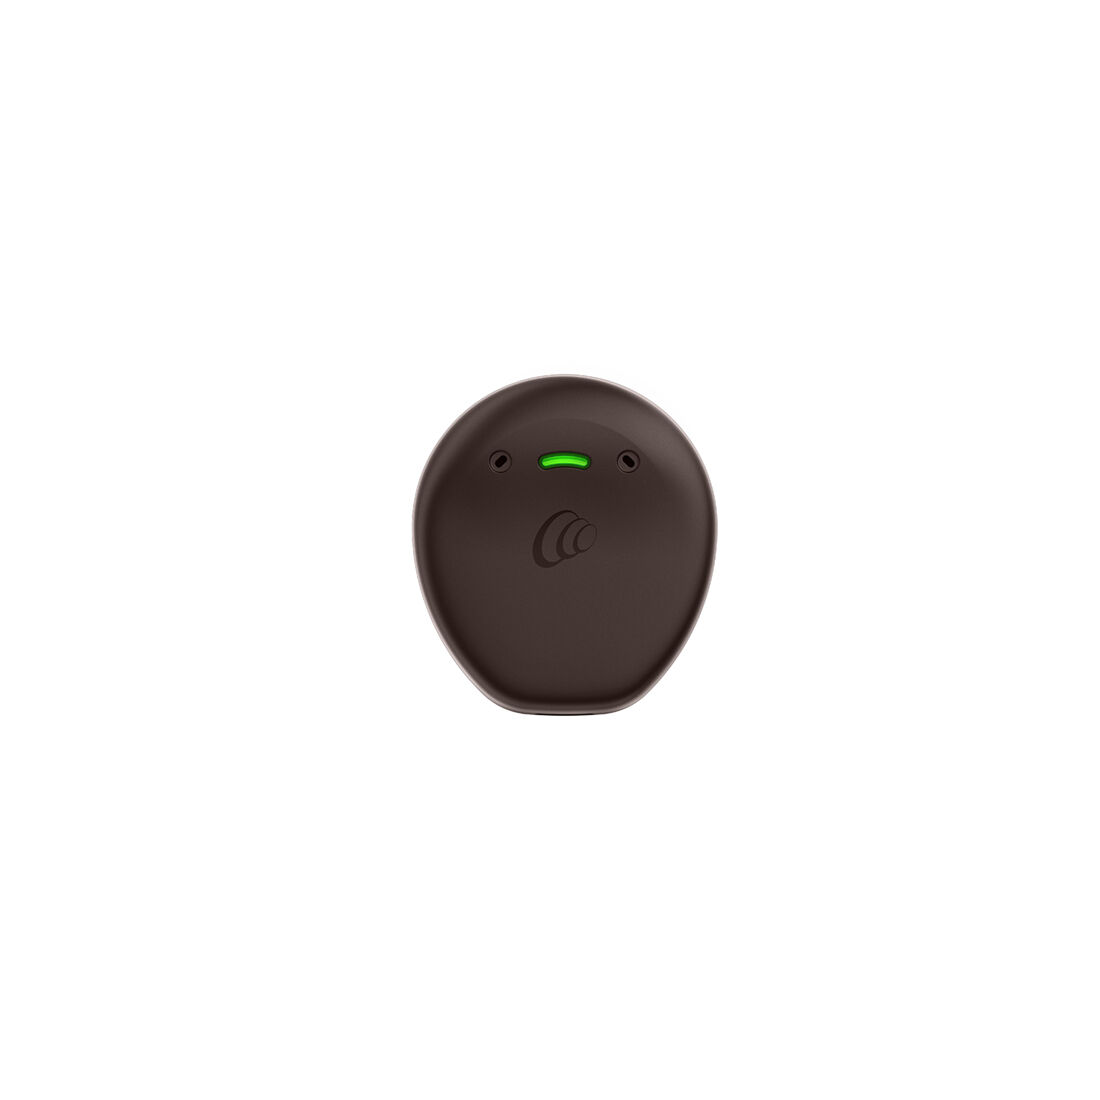 Kanso 2 sound processor chocolate brown color